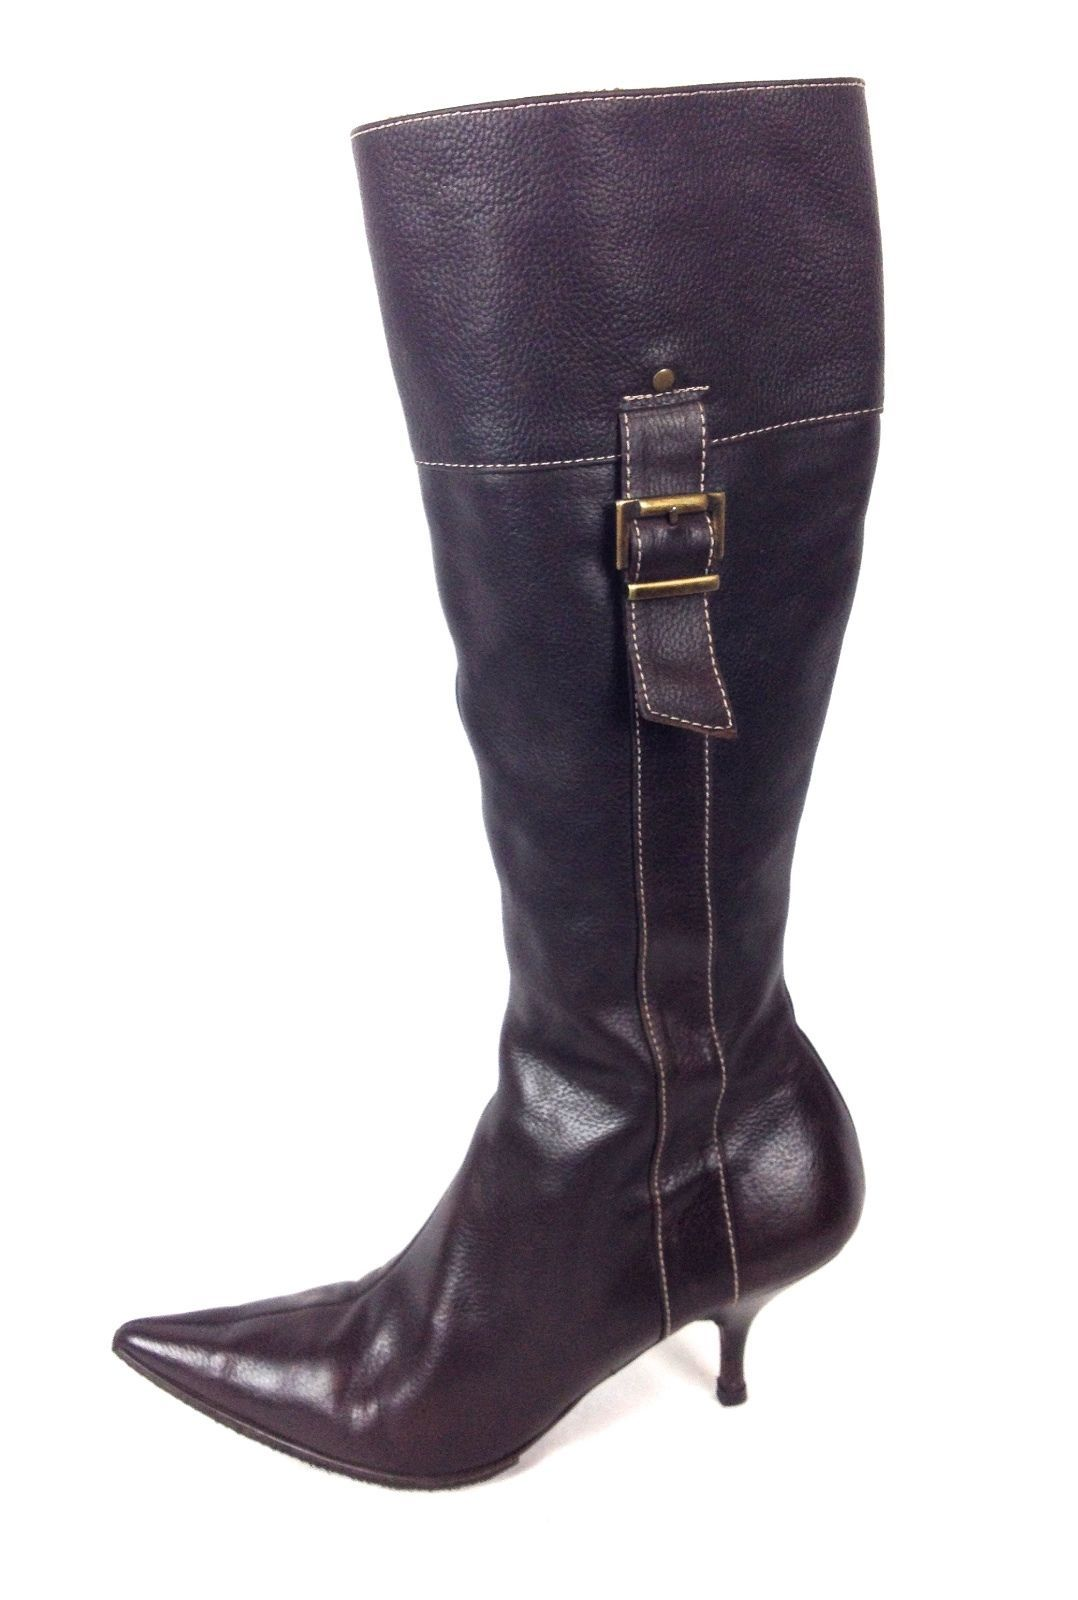 f22fcd5b1bf Zara Shoes 36 6 Womens Brown Leather Boots